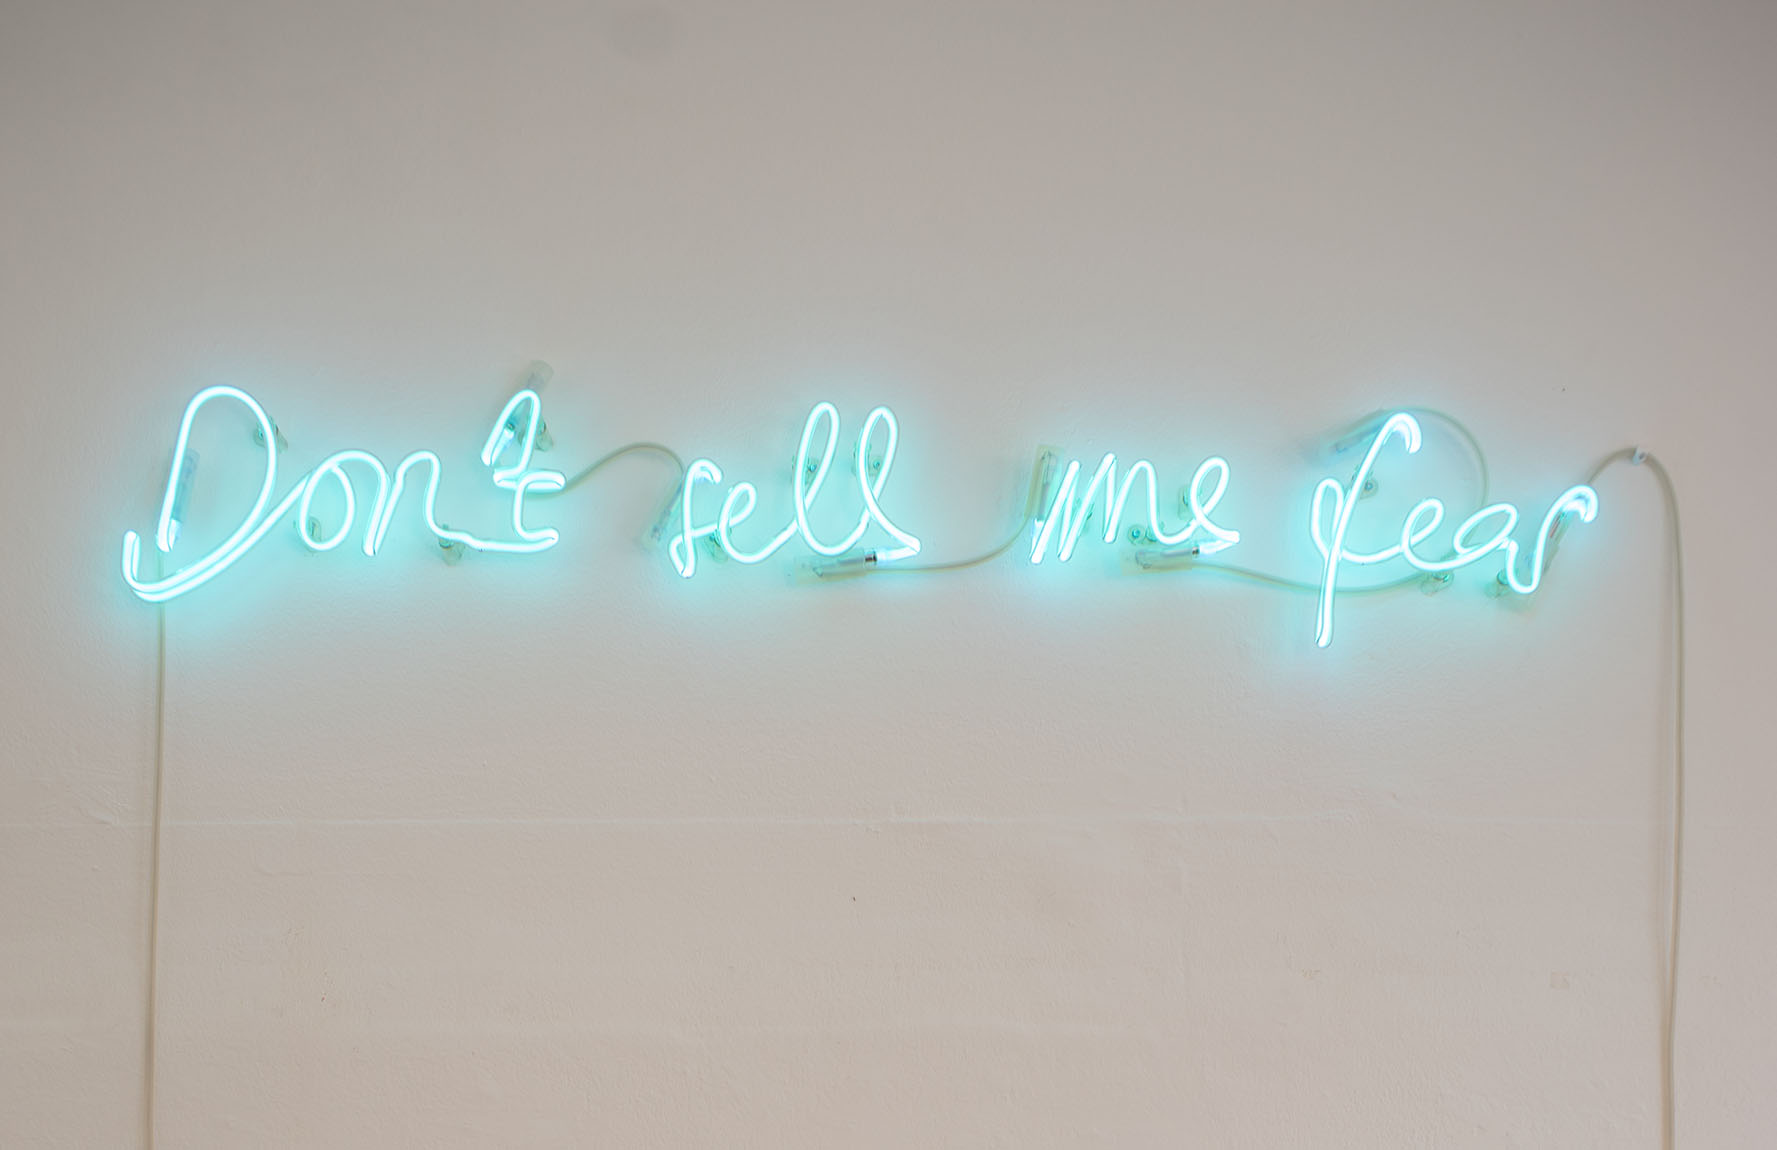 kathrin-borer_dont-sell-me-fear_neon_ca.-20-x-115-x-5-cm_foto-by-andreas-hagenbach_2016